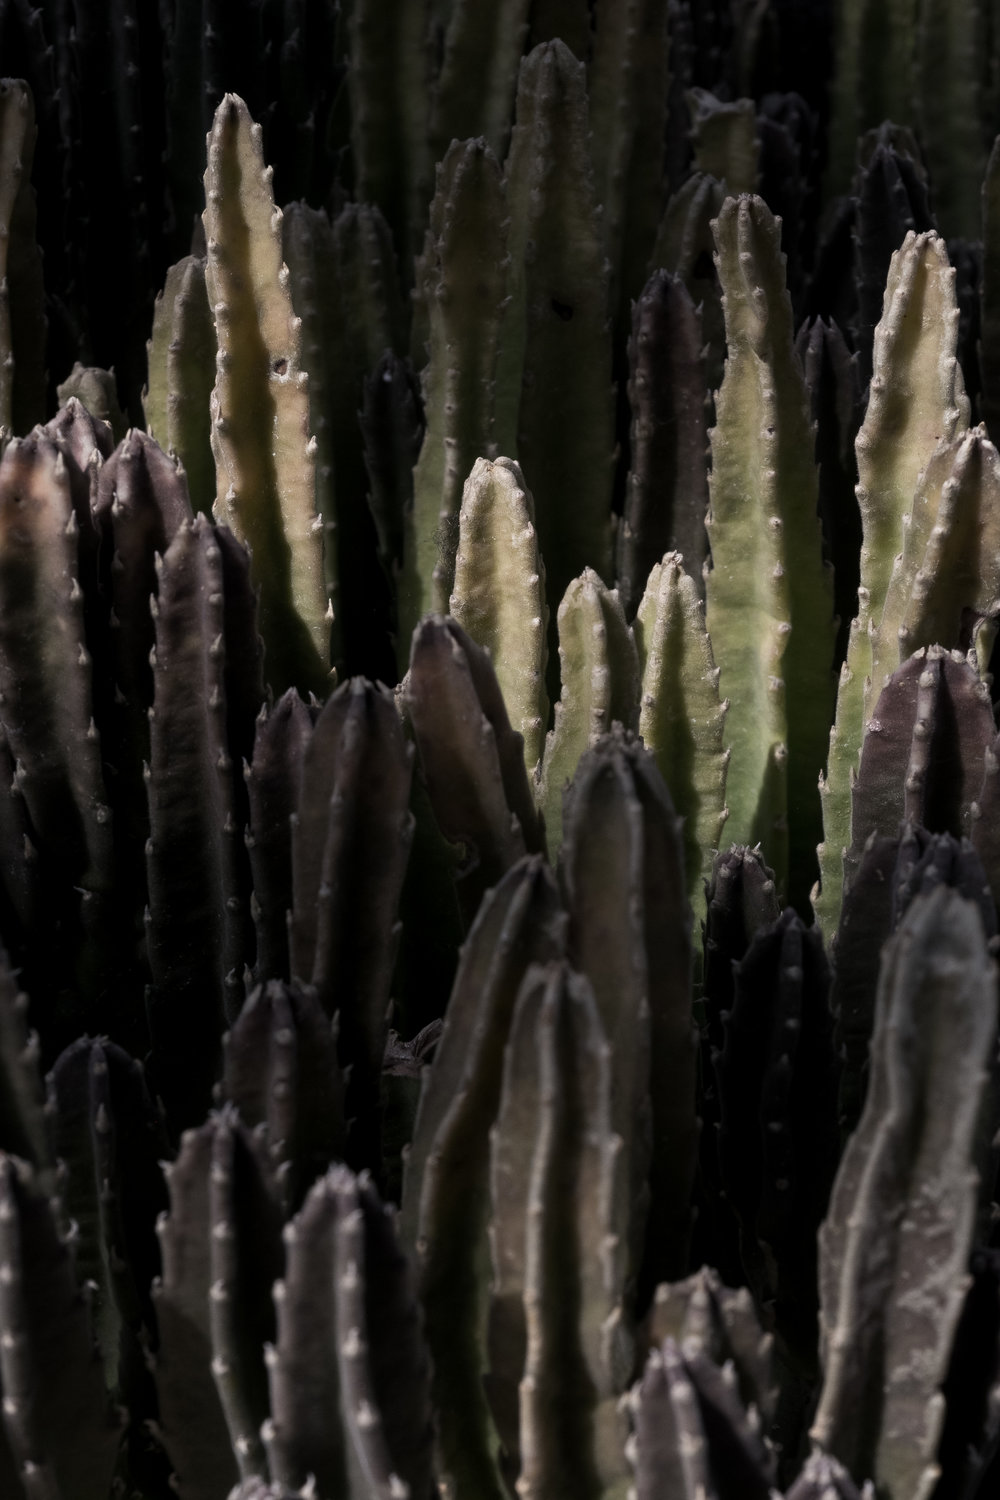 garfield-park-conservatory-cactus-2